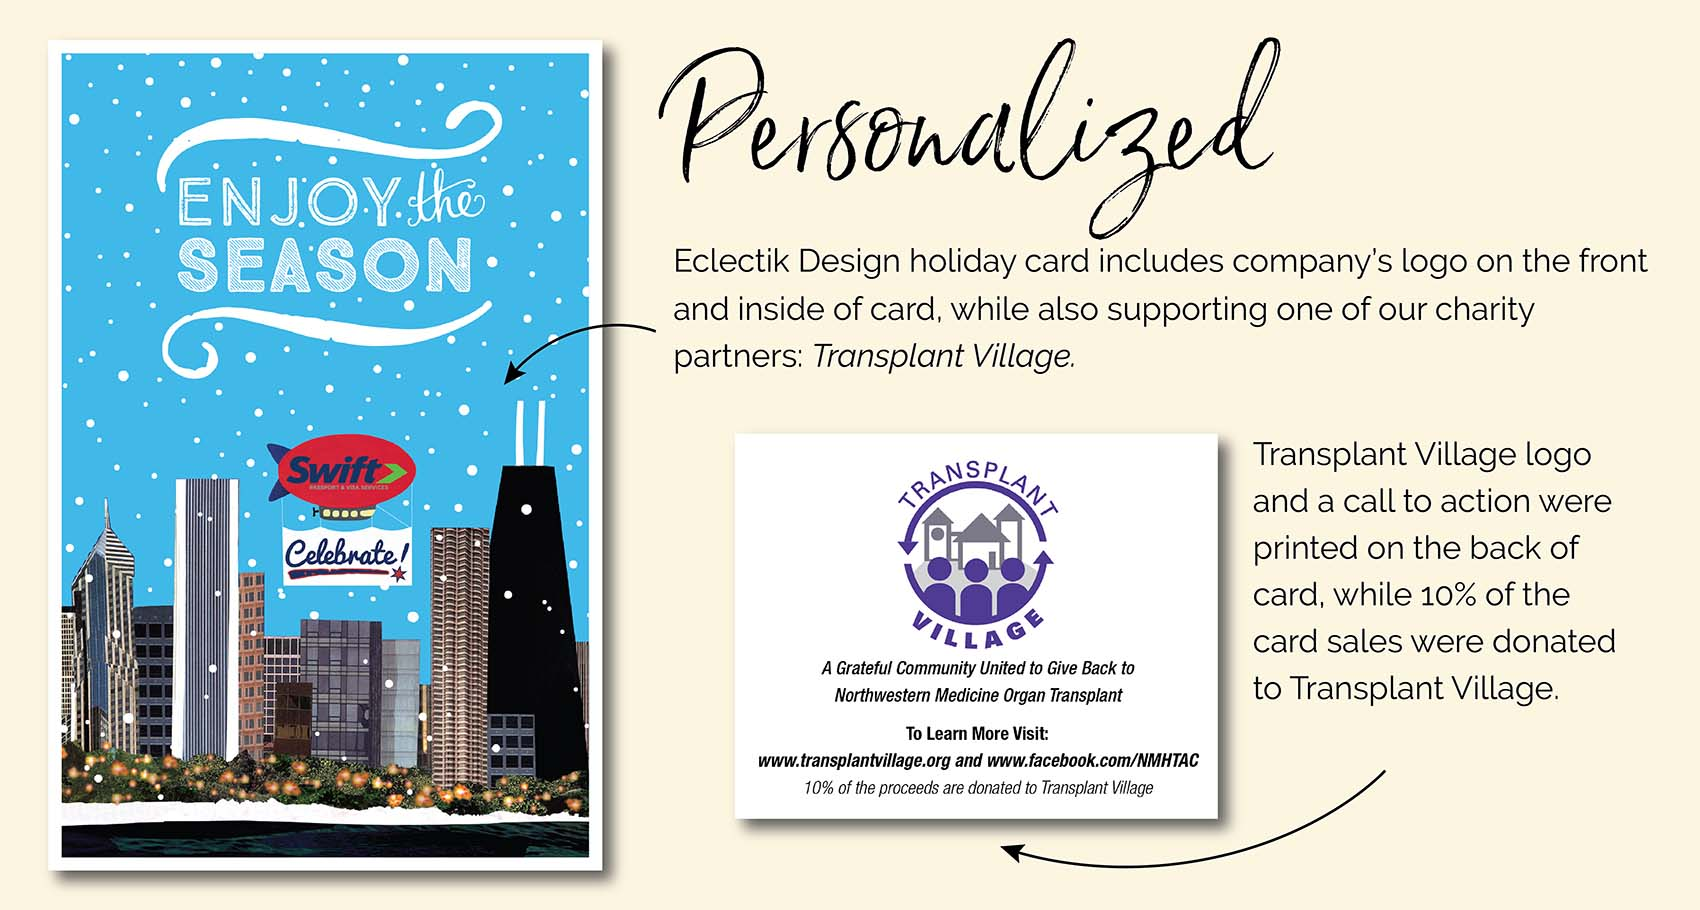 Swift Passport Enjoy the Season Holiday Card Design